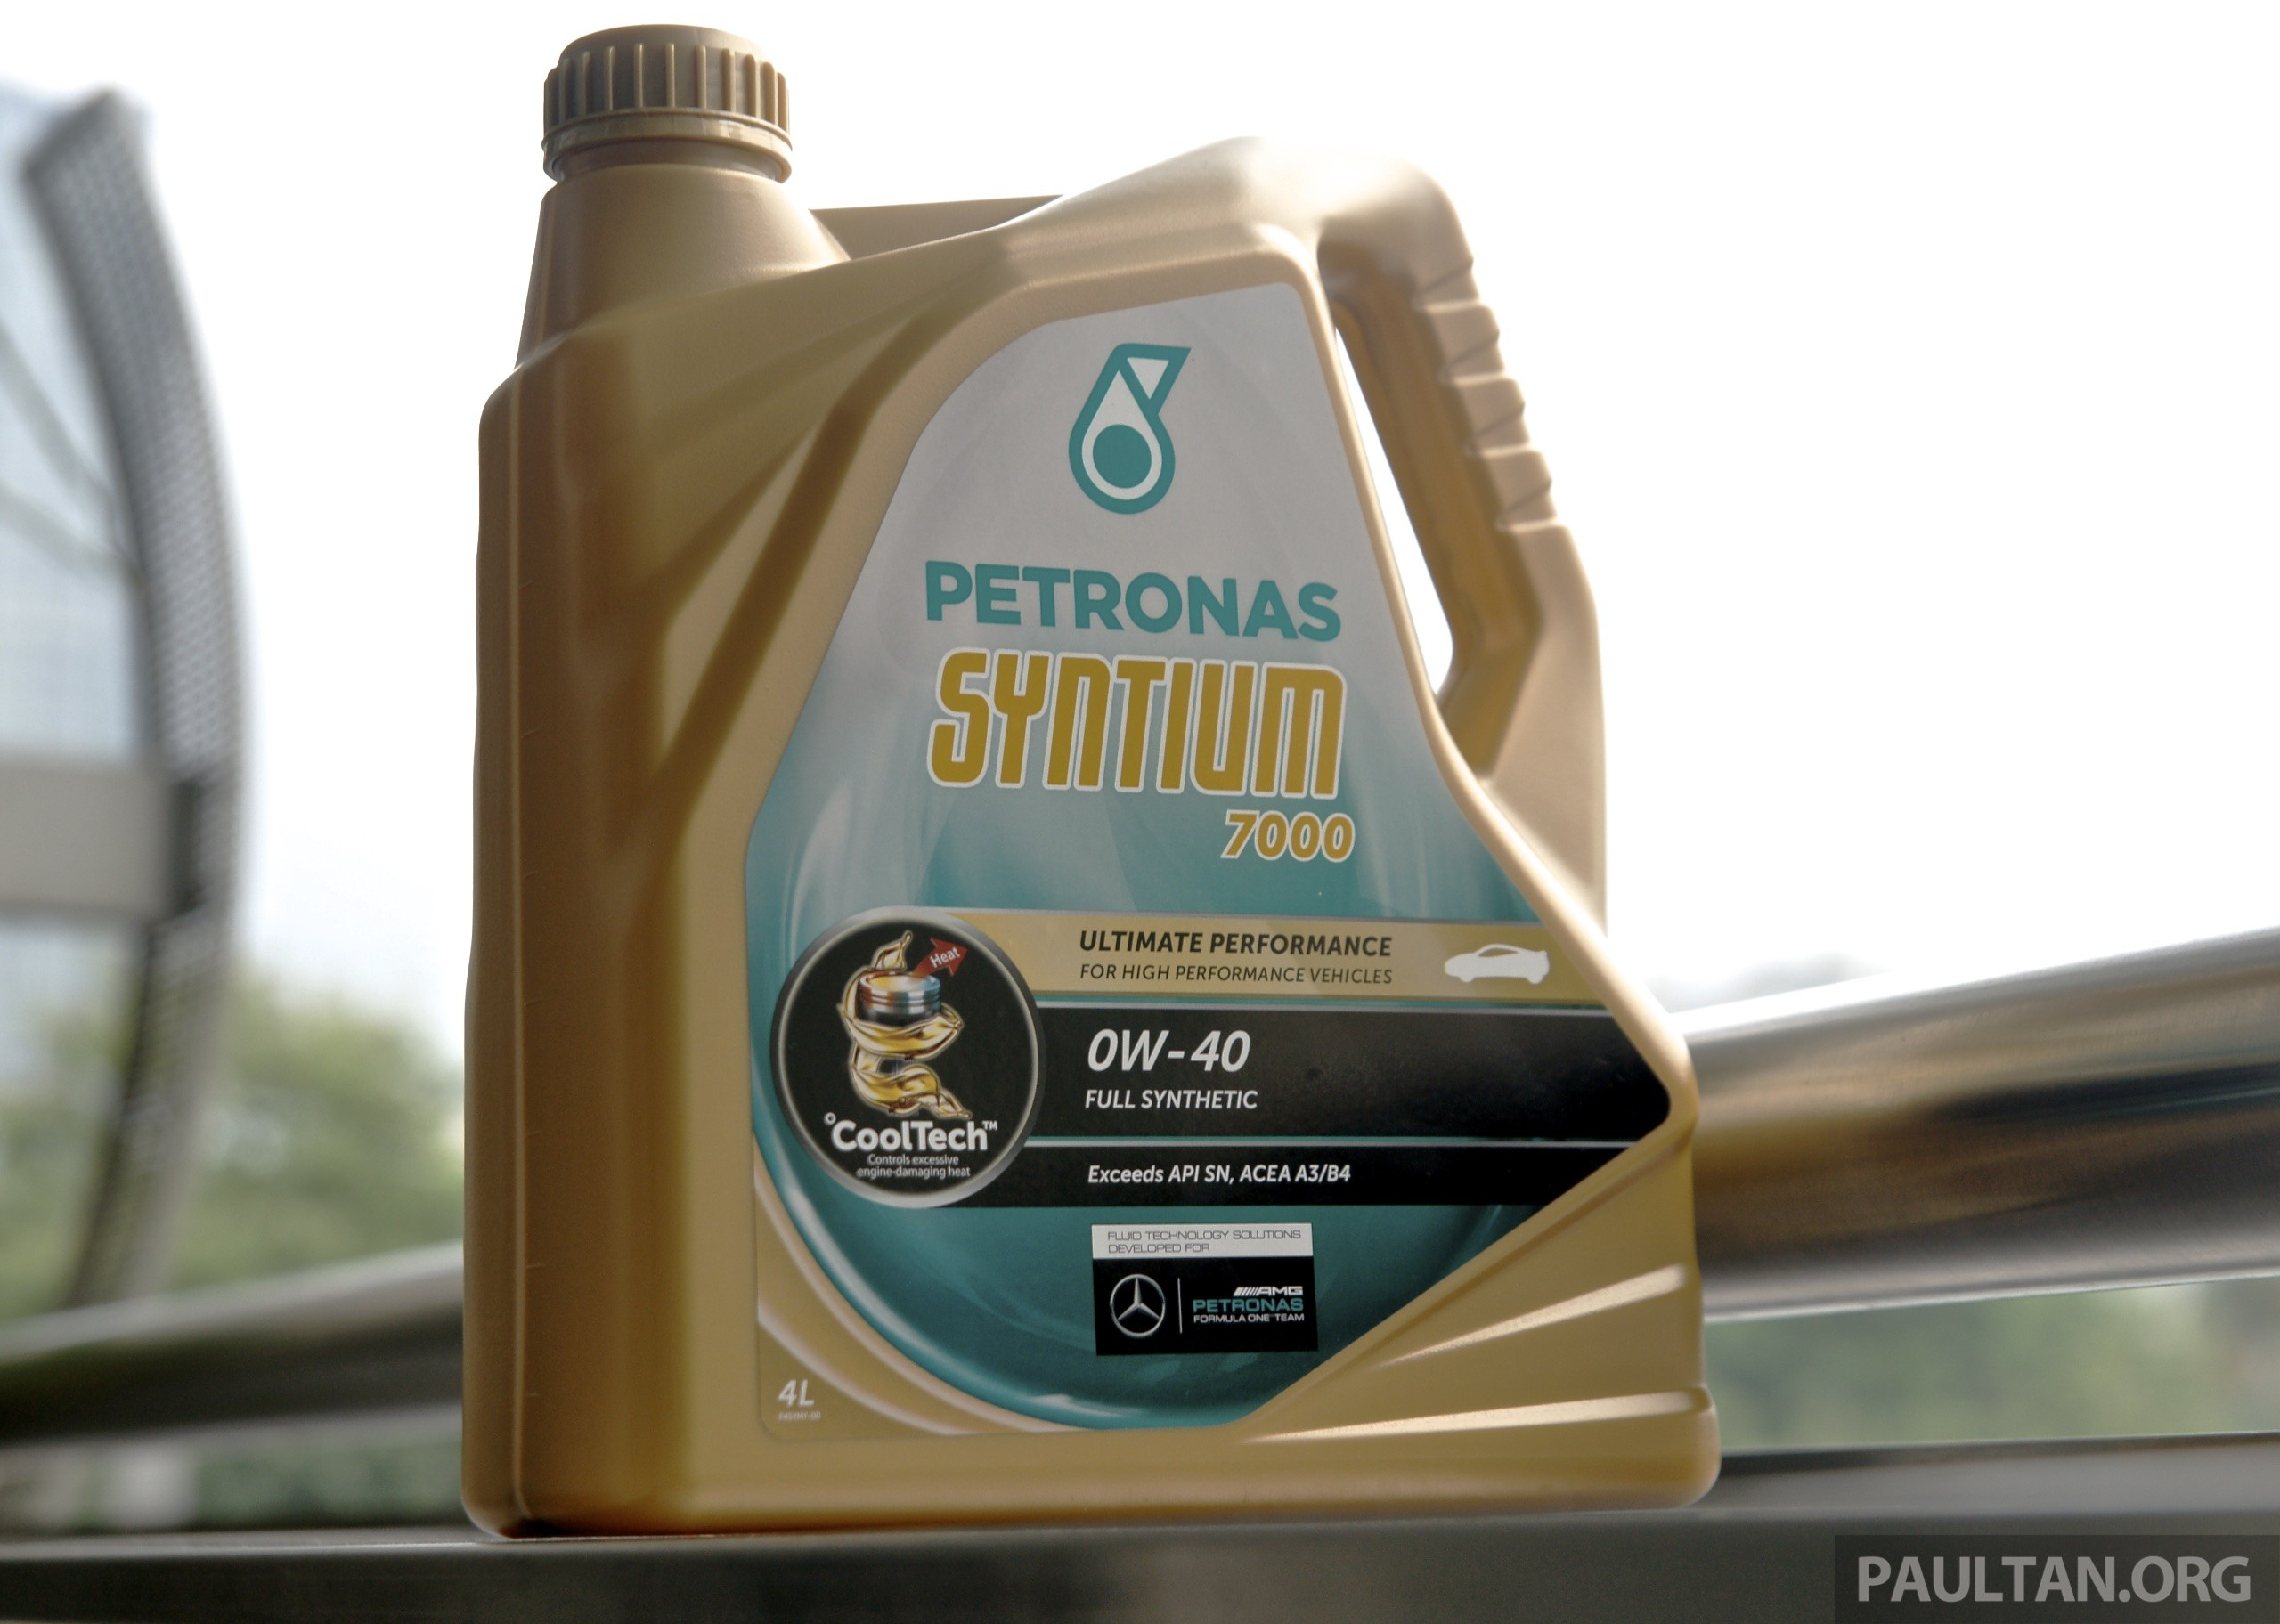 Petronas Syntium with CoolTech unveiled in Malaysia